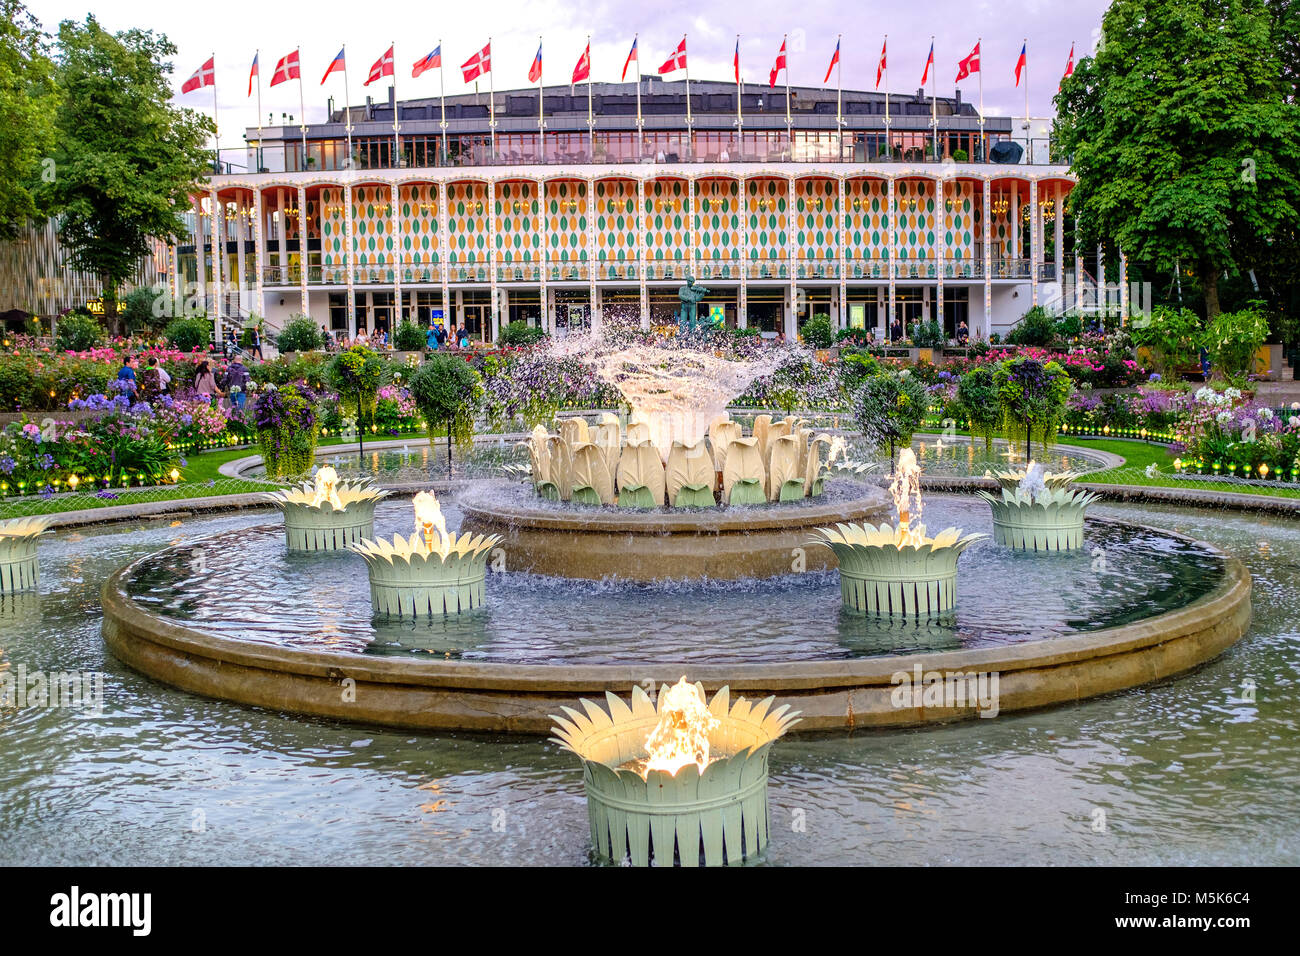 Tivoli Amusement Park Netherlands Tivoli Concert Hall Stock Photos And Tivoli Concert Hall